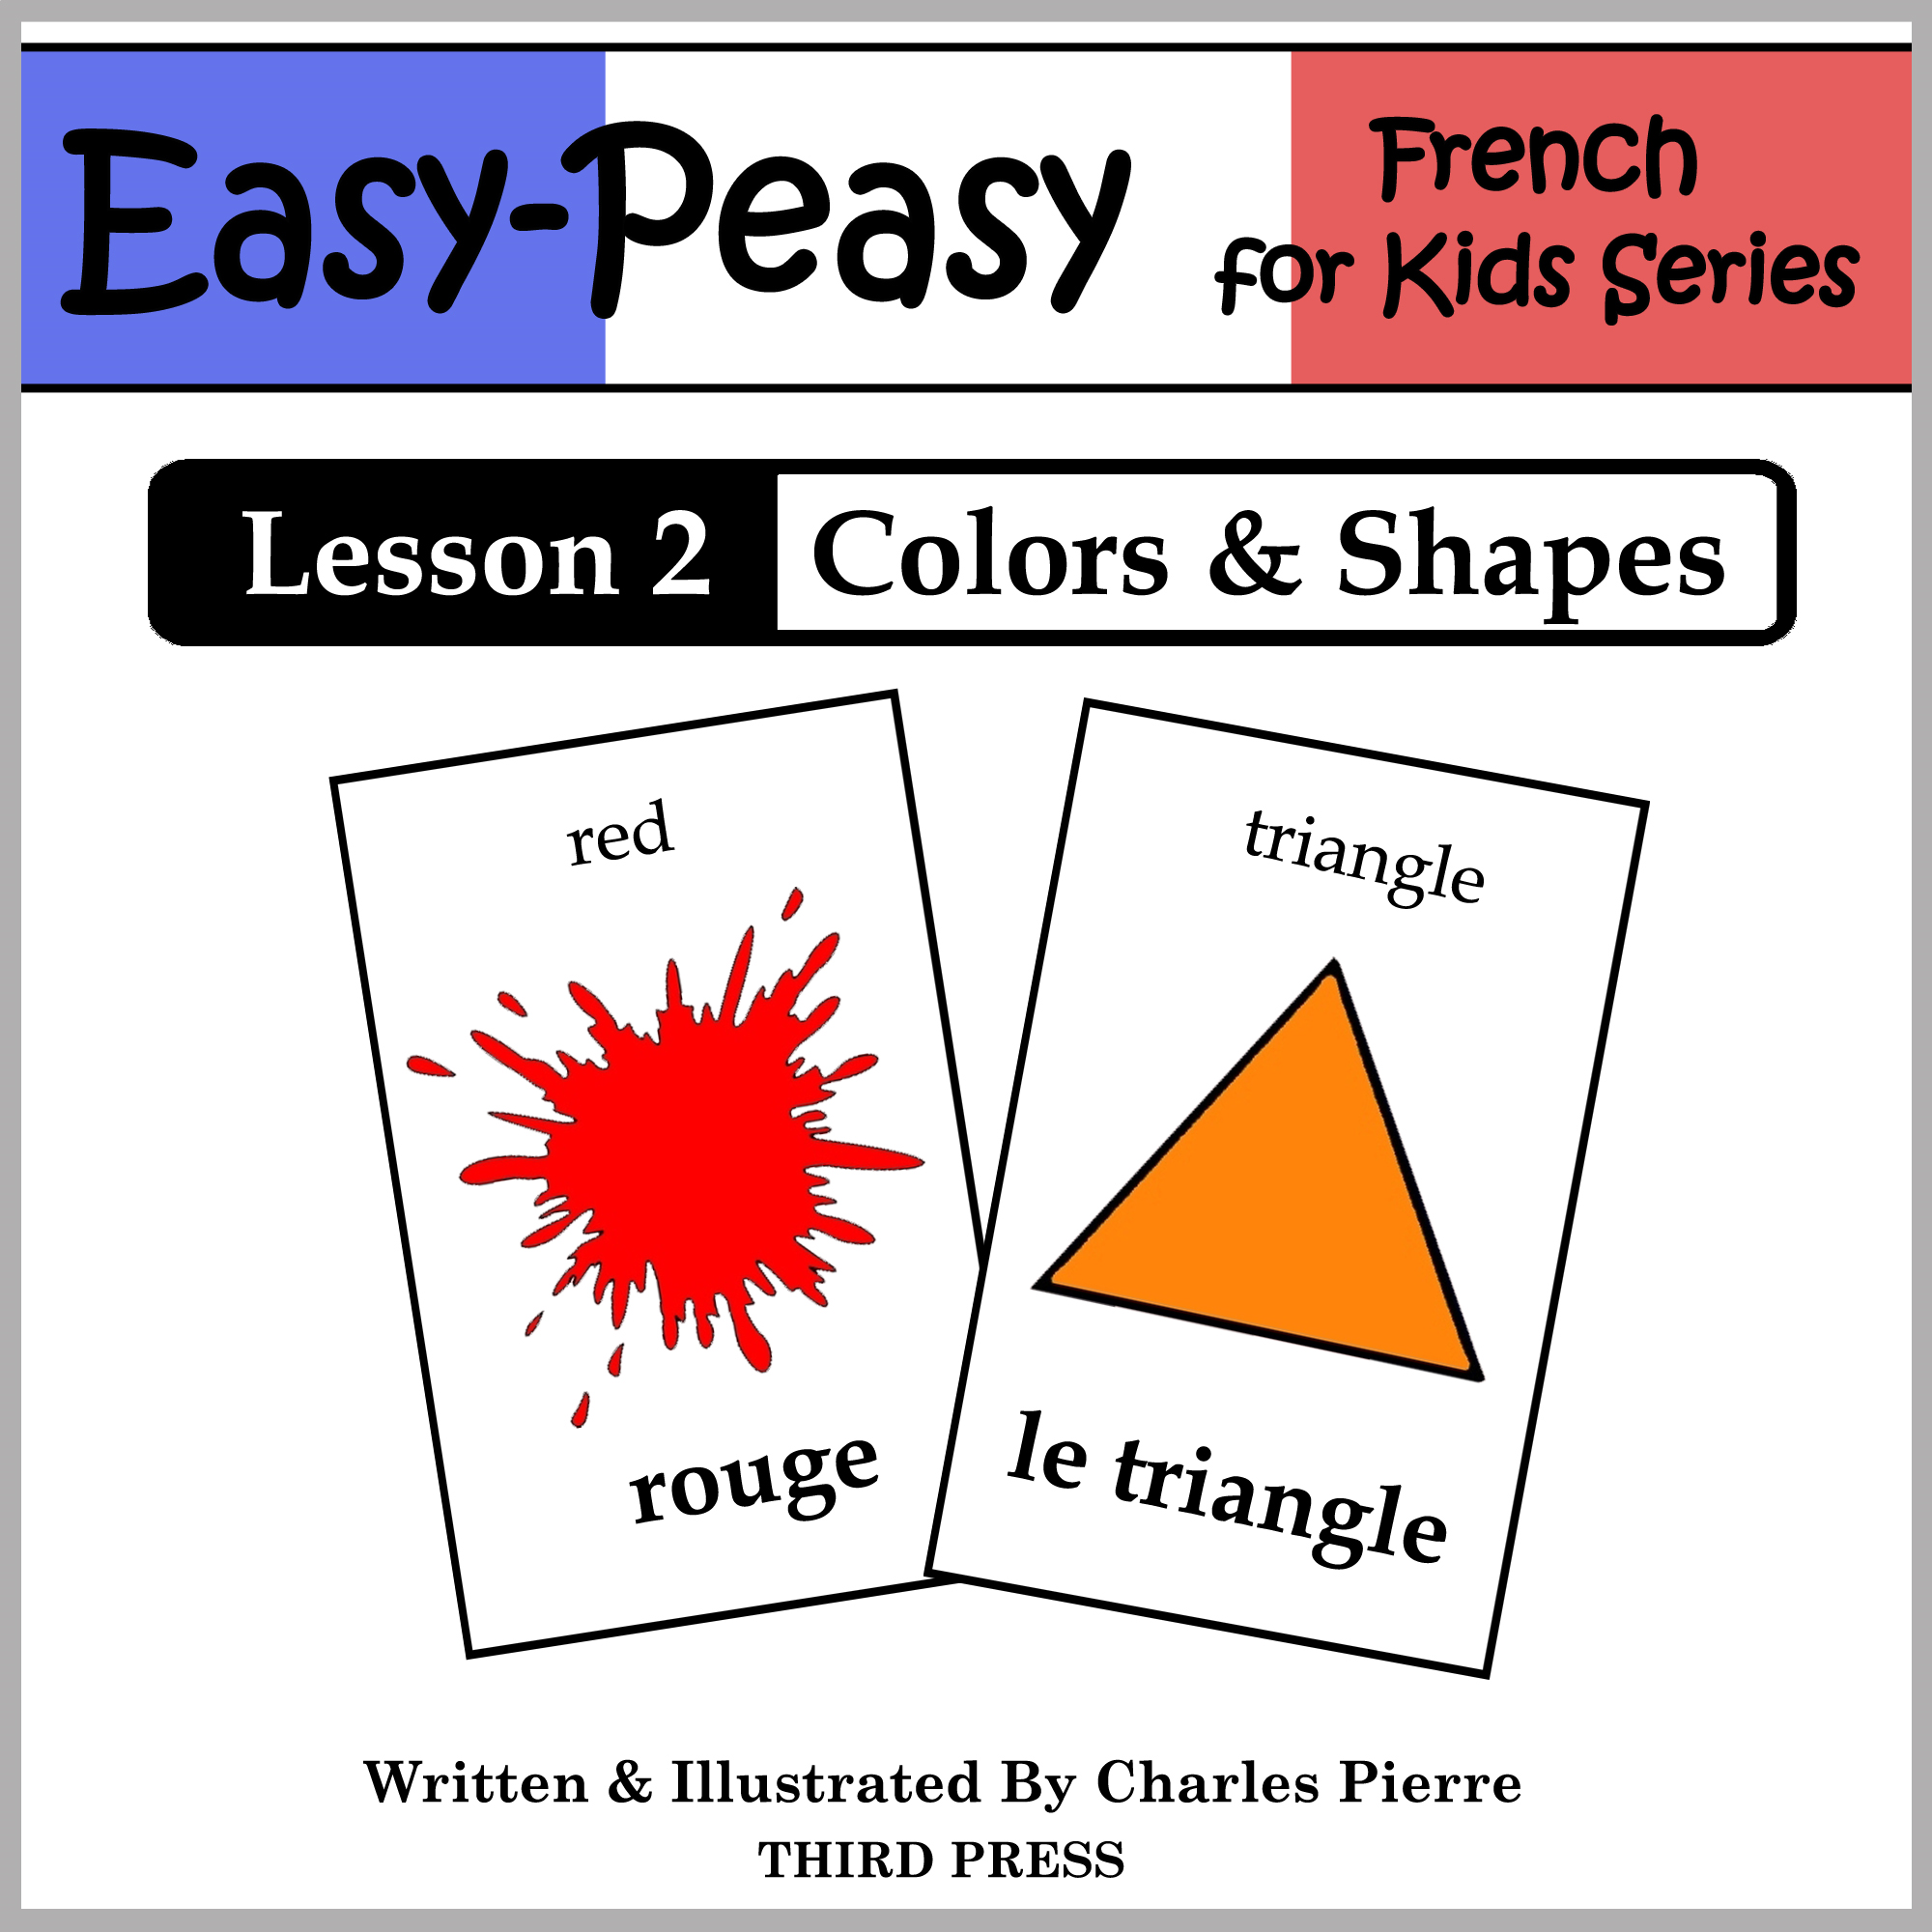 French Lesson 2: Colors & Shapes